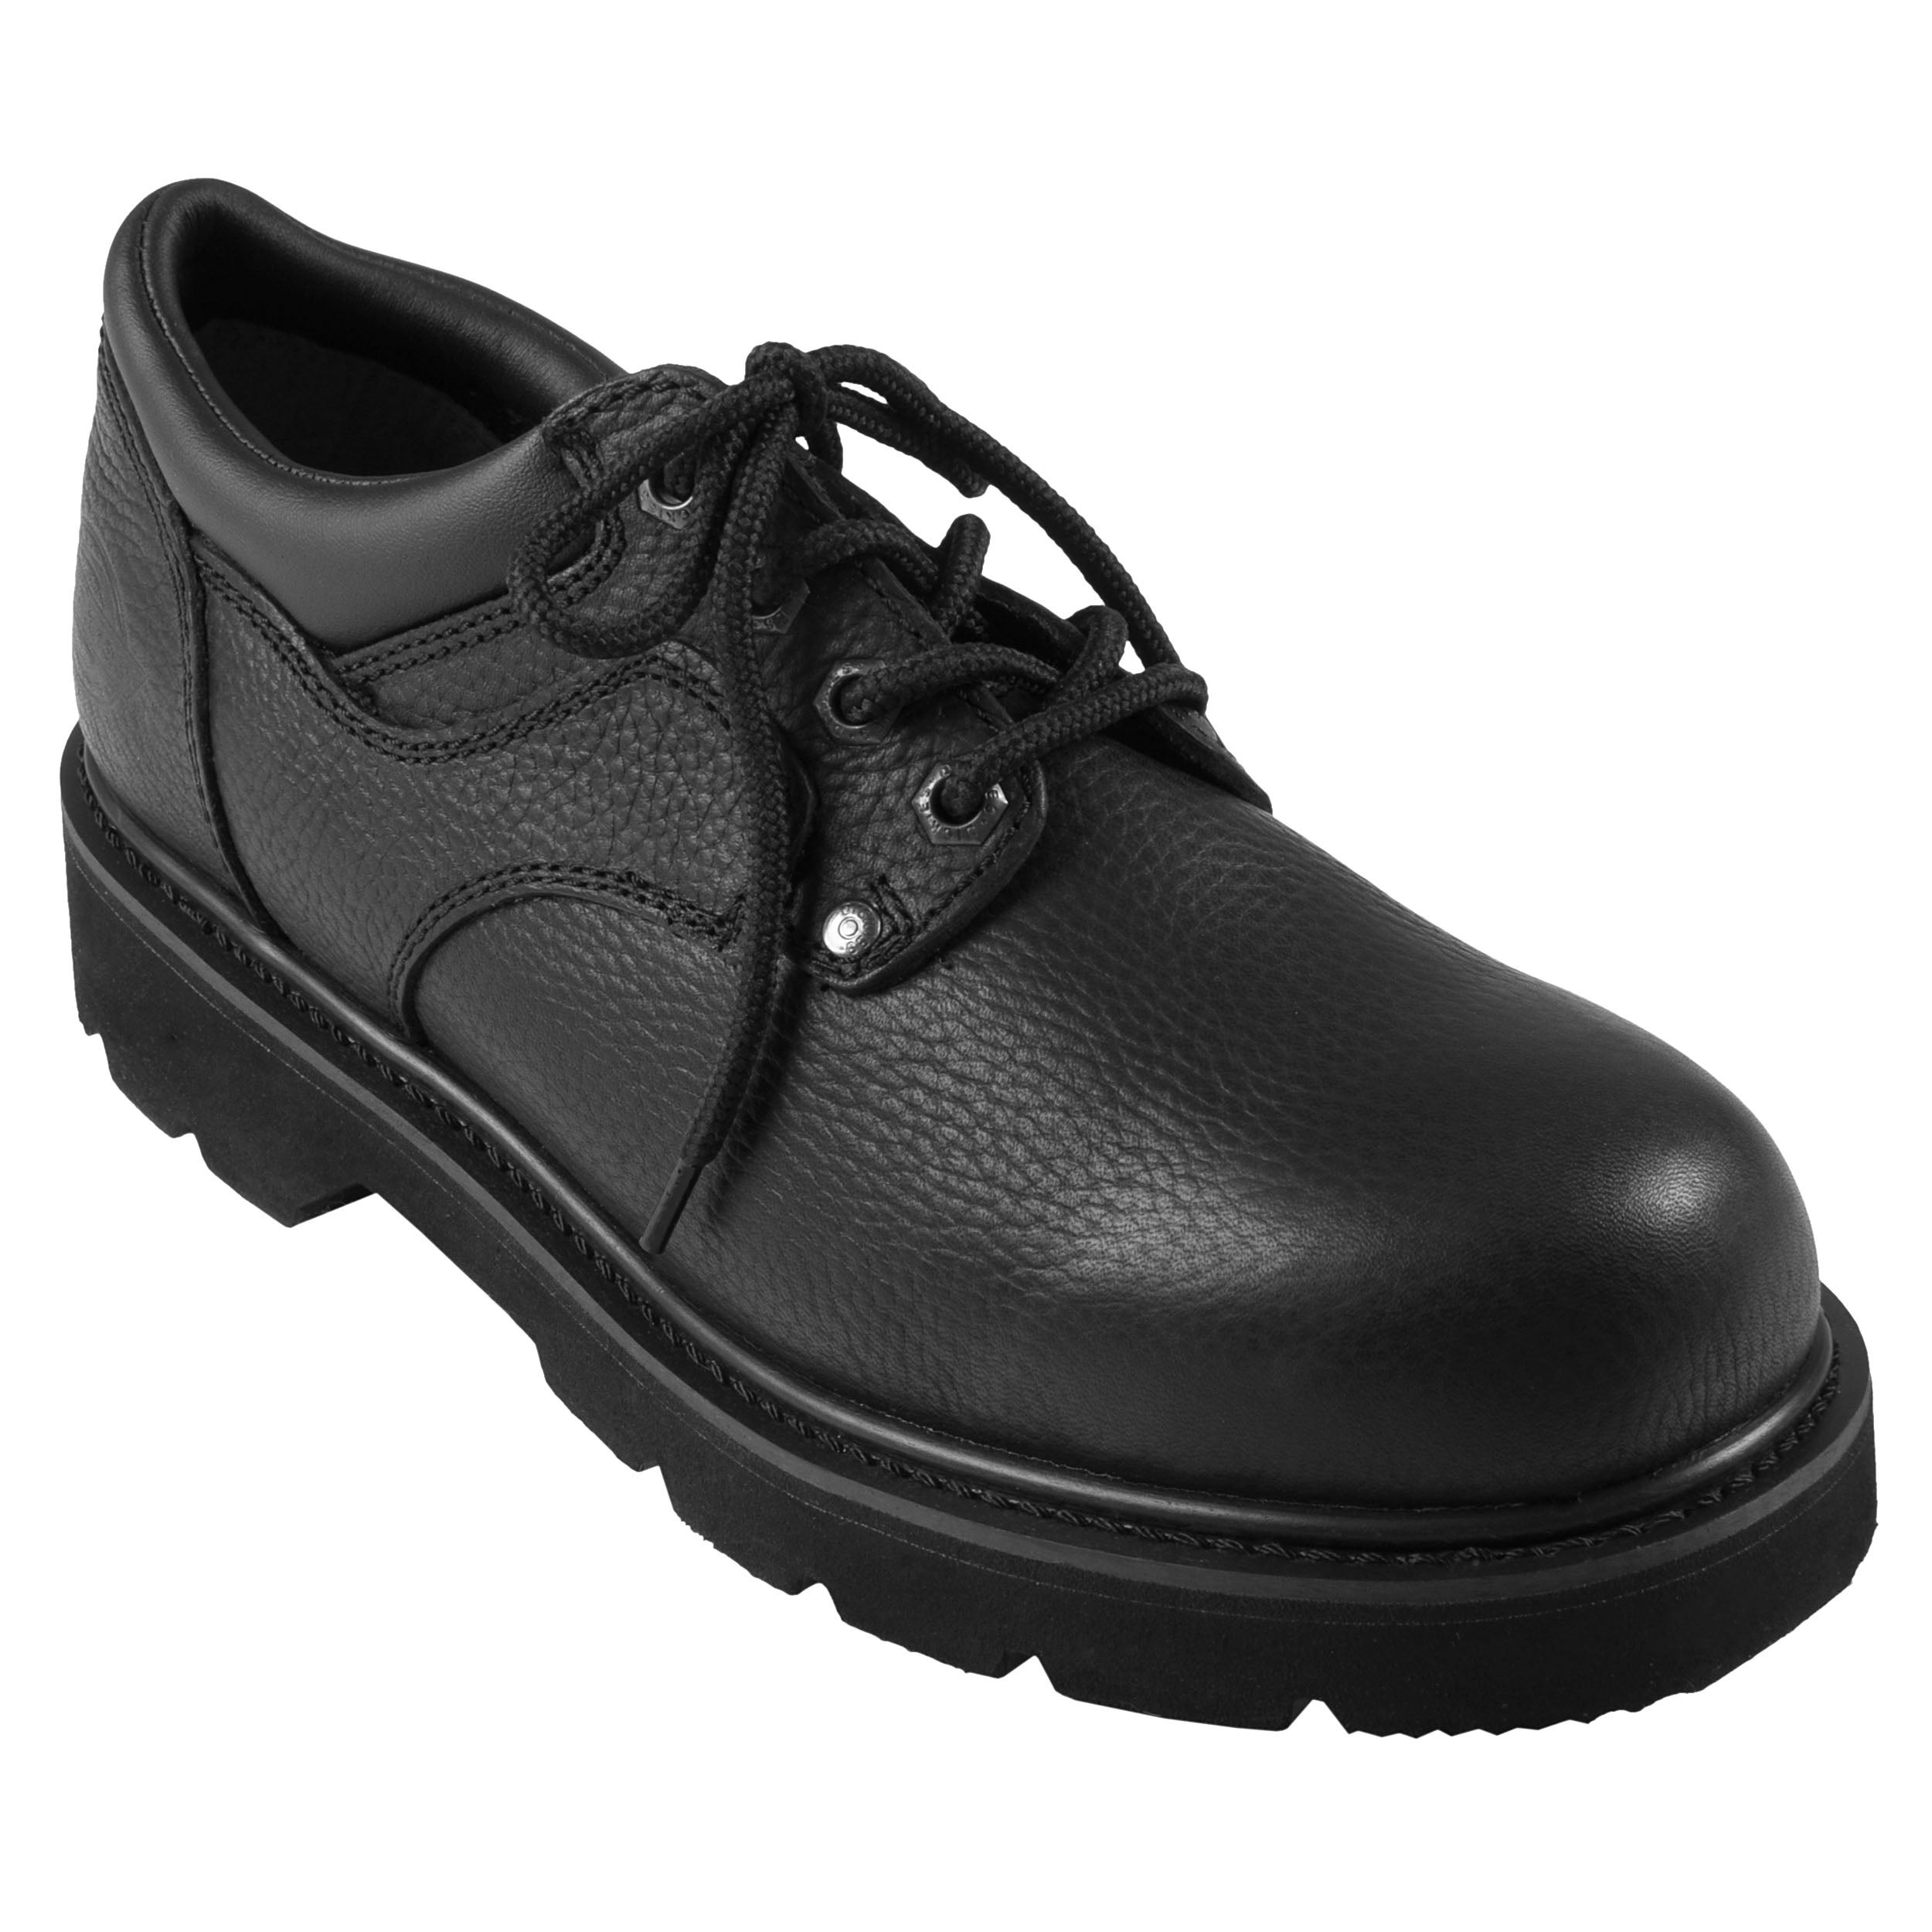 Dickies Men's Wide Oxford Lug Sole Genuine Leather Lace-up Shoe